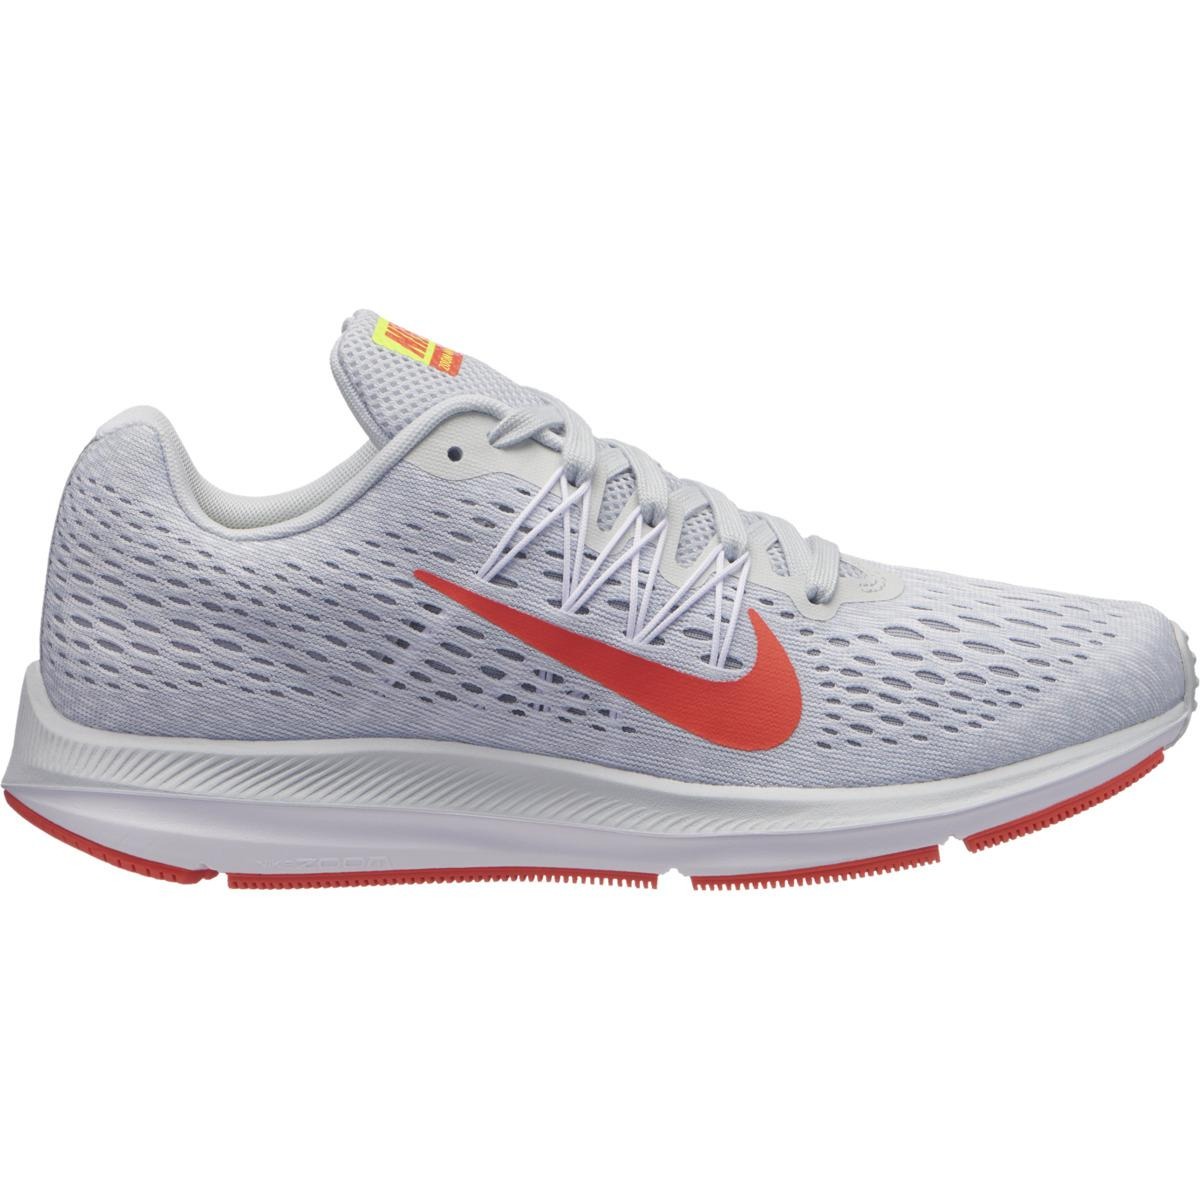 40aad3e6b23963 Nike Air Zoom Winflo 5 Running Shoes in Gray - Lyst